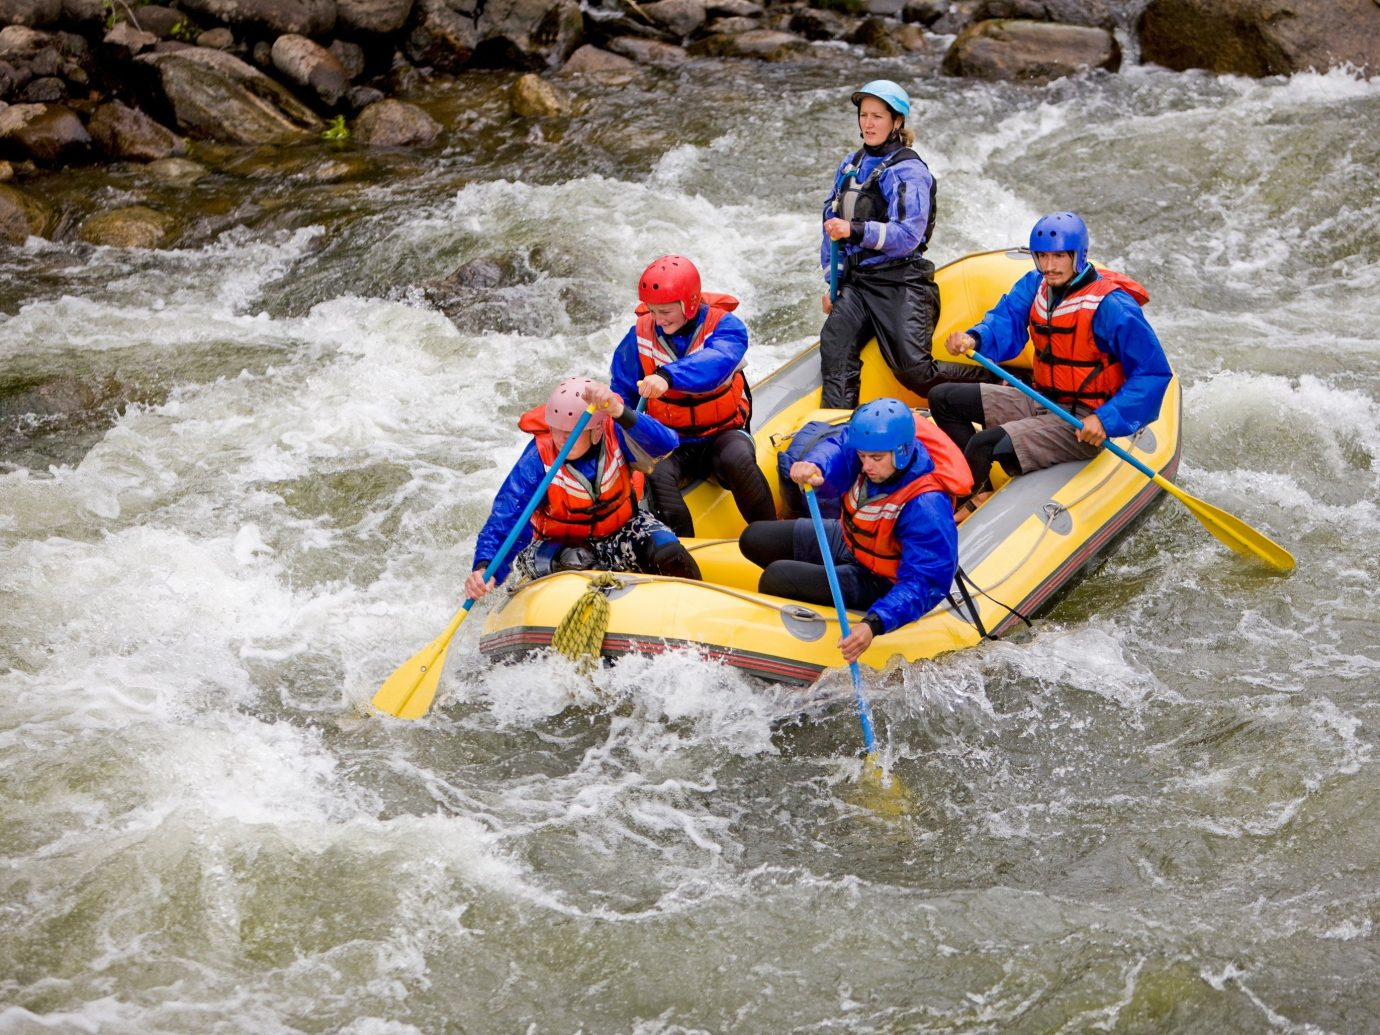 Health + Wellness Trip Ideas outdoor Raft water rafting sports water sport riding watercraft River yellow rapid boating recreation transport outdoor recreation extreme sport whitewater kayaking wave